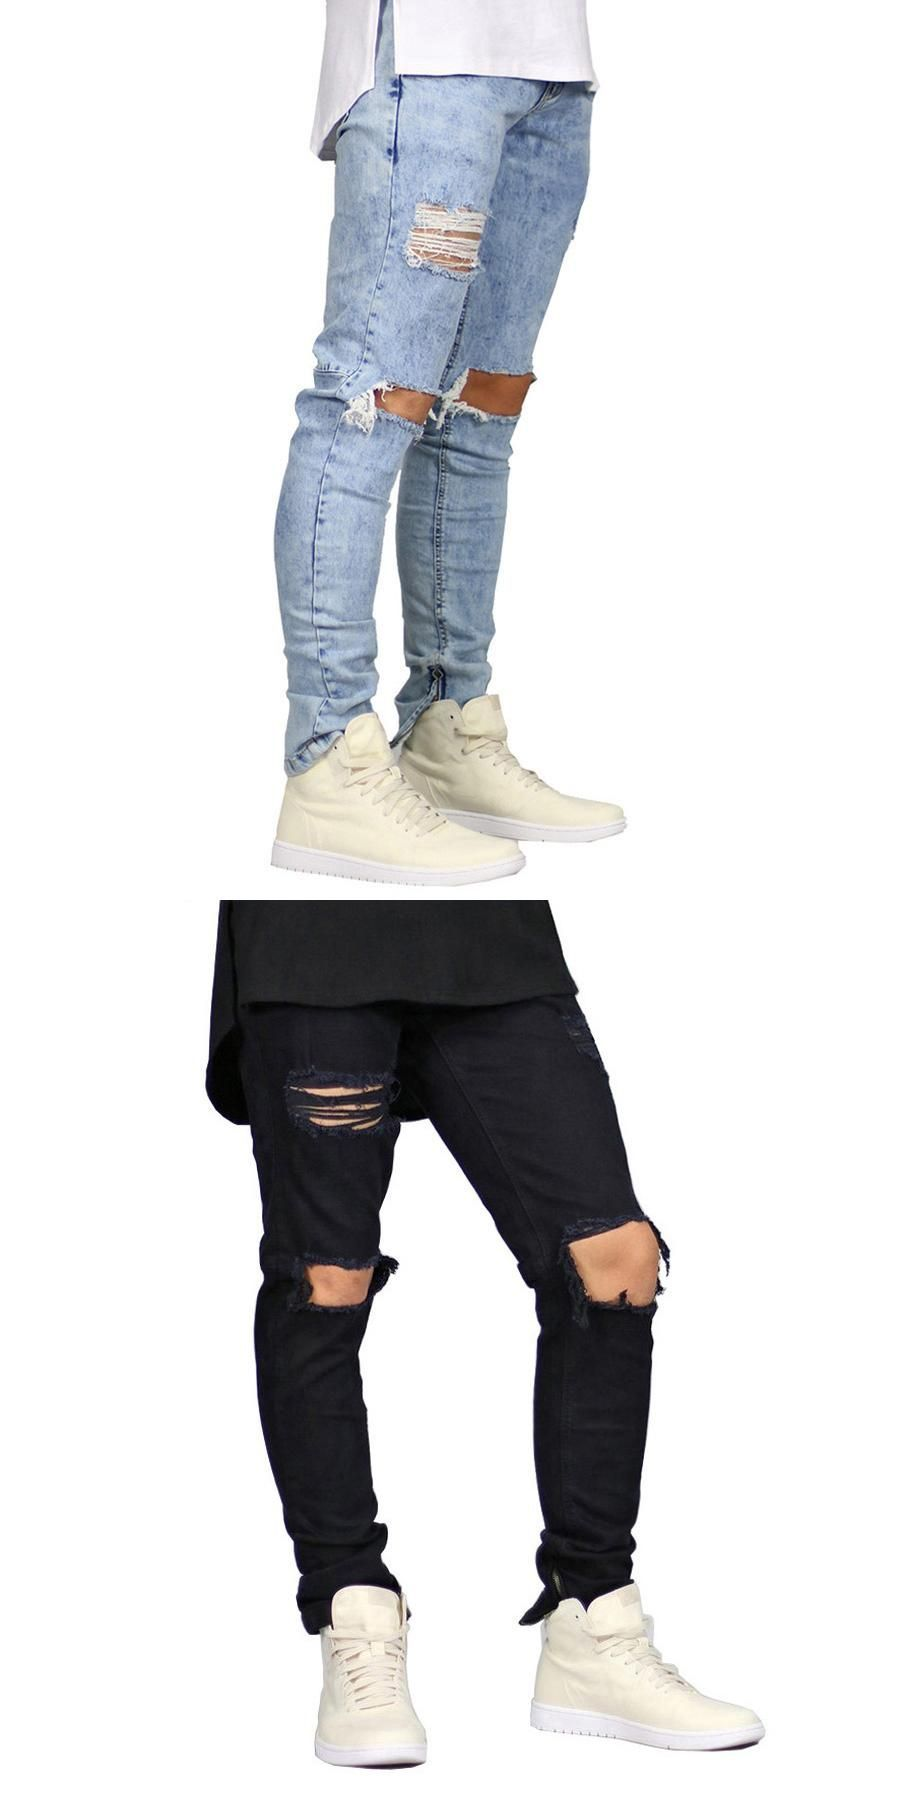 New Men Stretch Skinny Jeans Side Zipper Hip Hop Urban Destroyed Distressed  Side Zipper Pencil Jeans 1a3e66aa5c2f